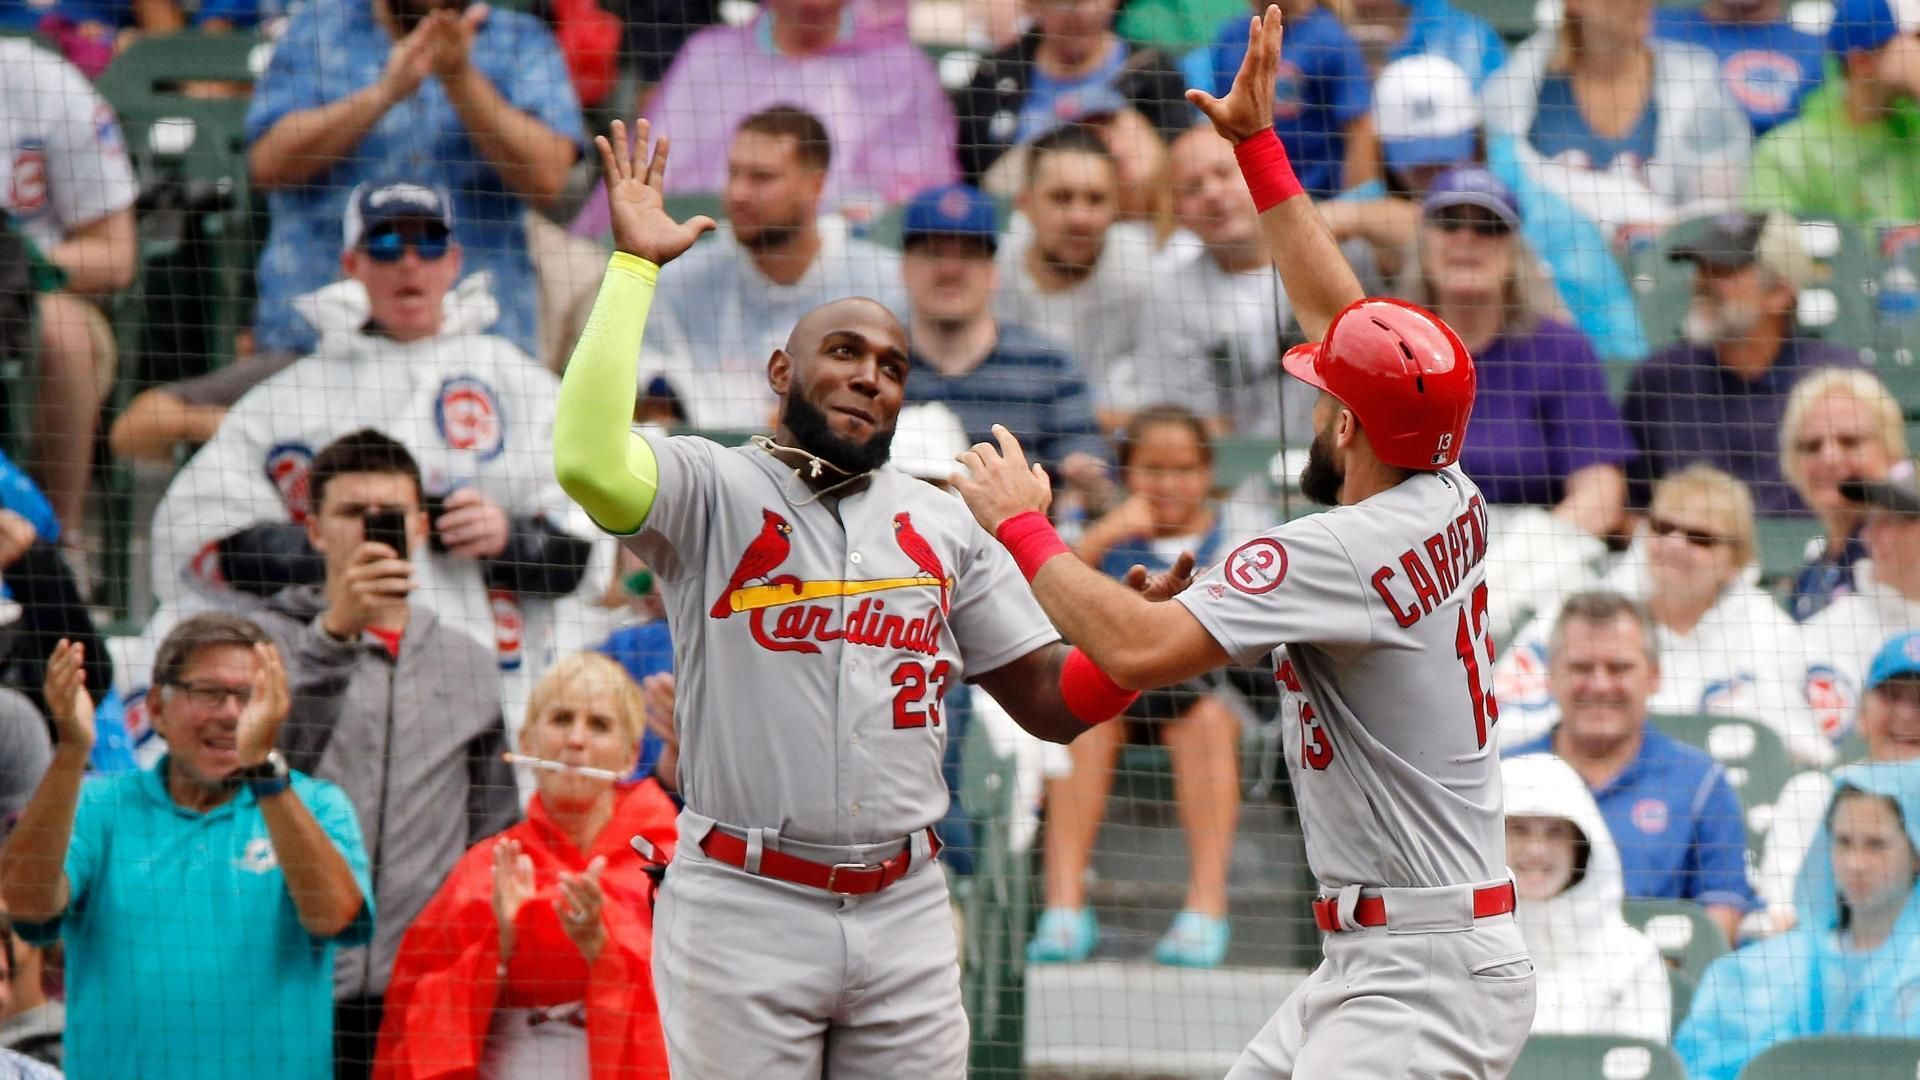 Carpenter hits three homers in victory